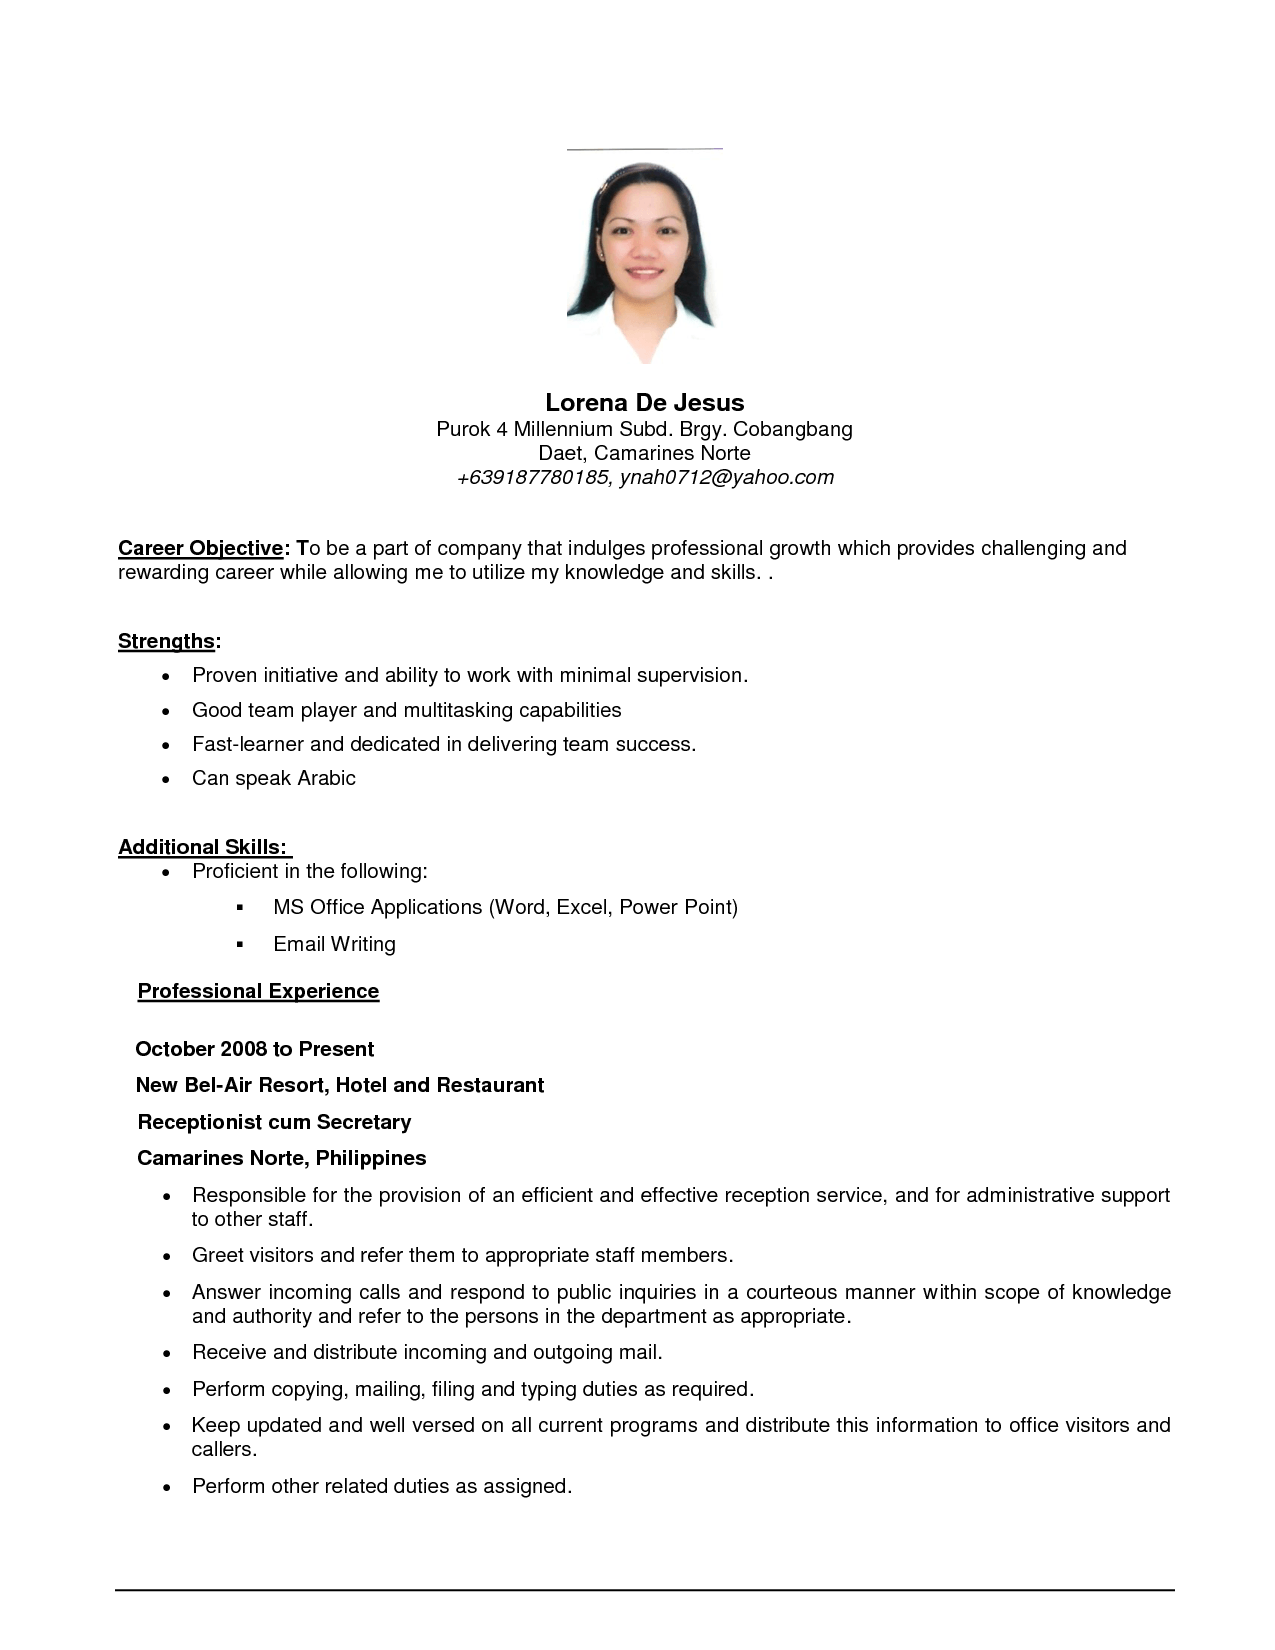 Career Objective Statement Examples Pleasing Resume Examples Job Objective  Pinterest  Resume Examples Create .